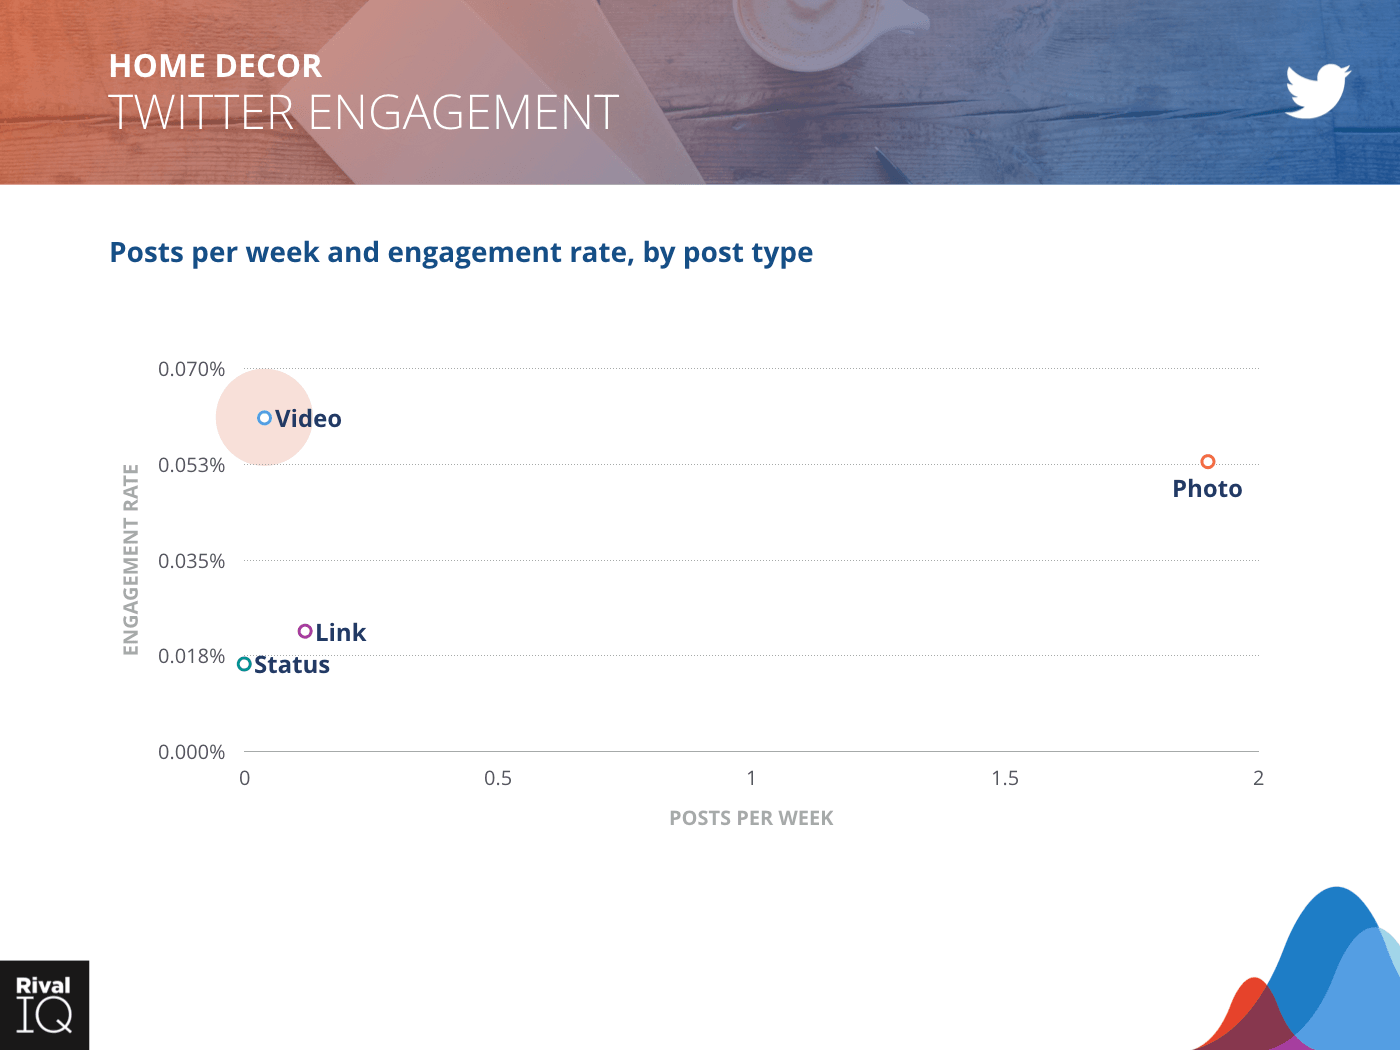 Home Decor Industry: scatter graph, posts per week and engagement rate on Twitter by post type